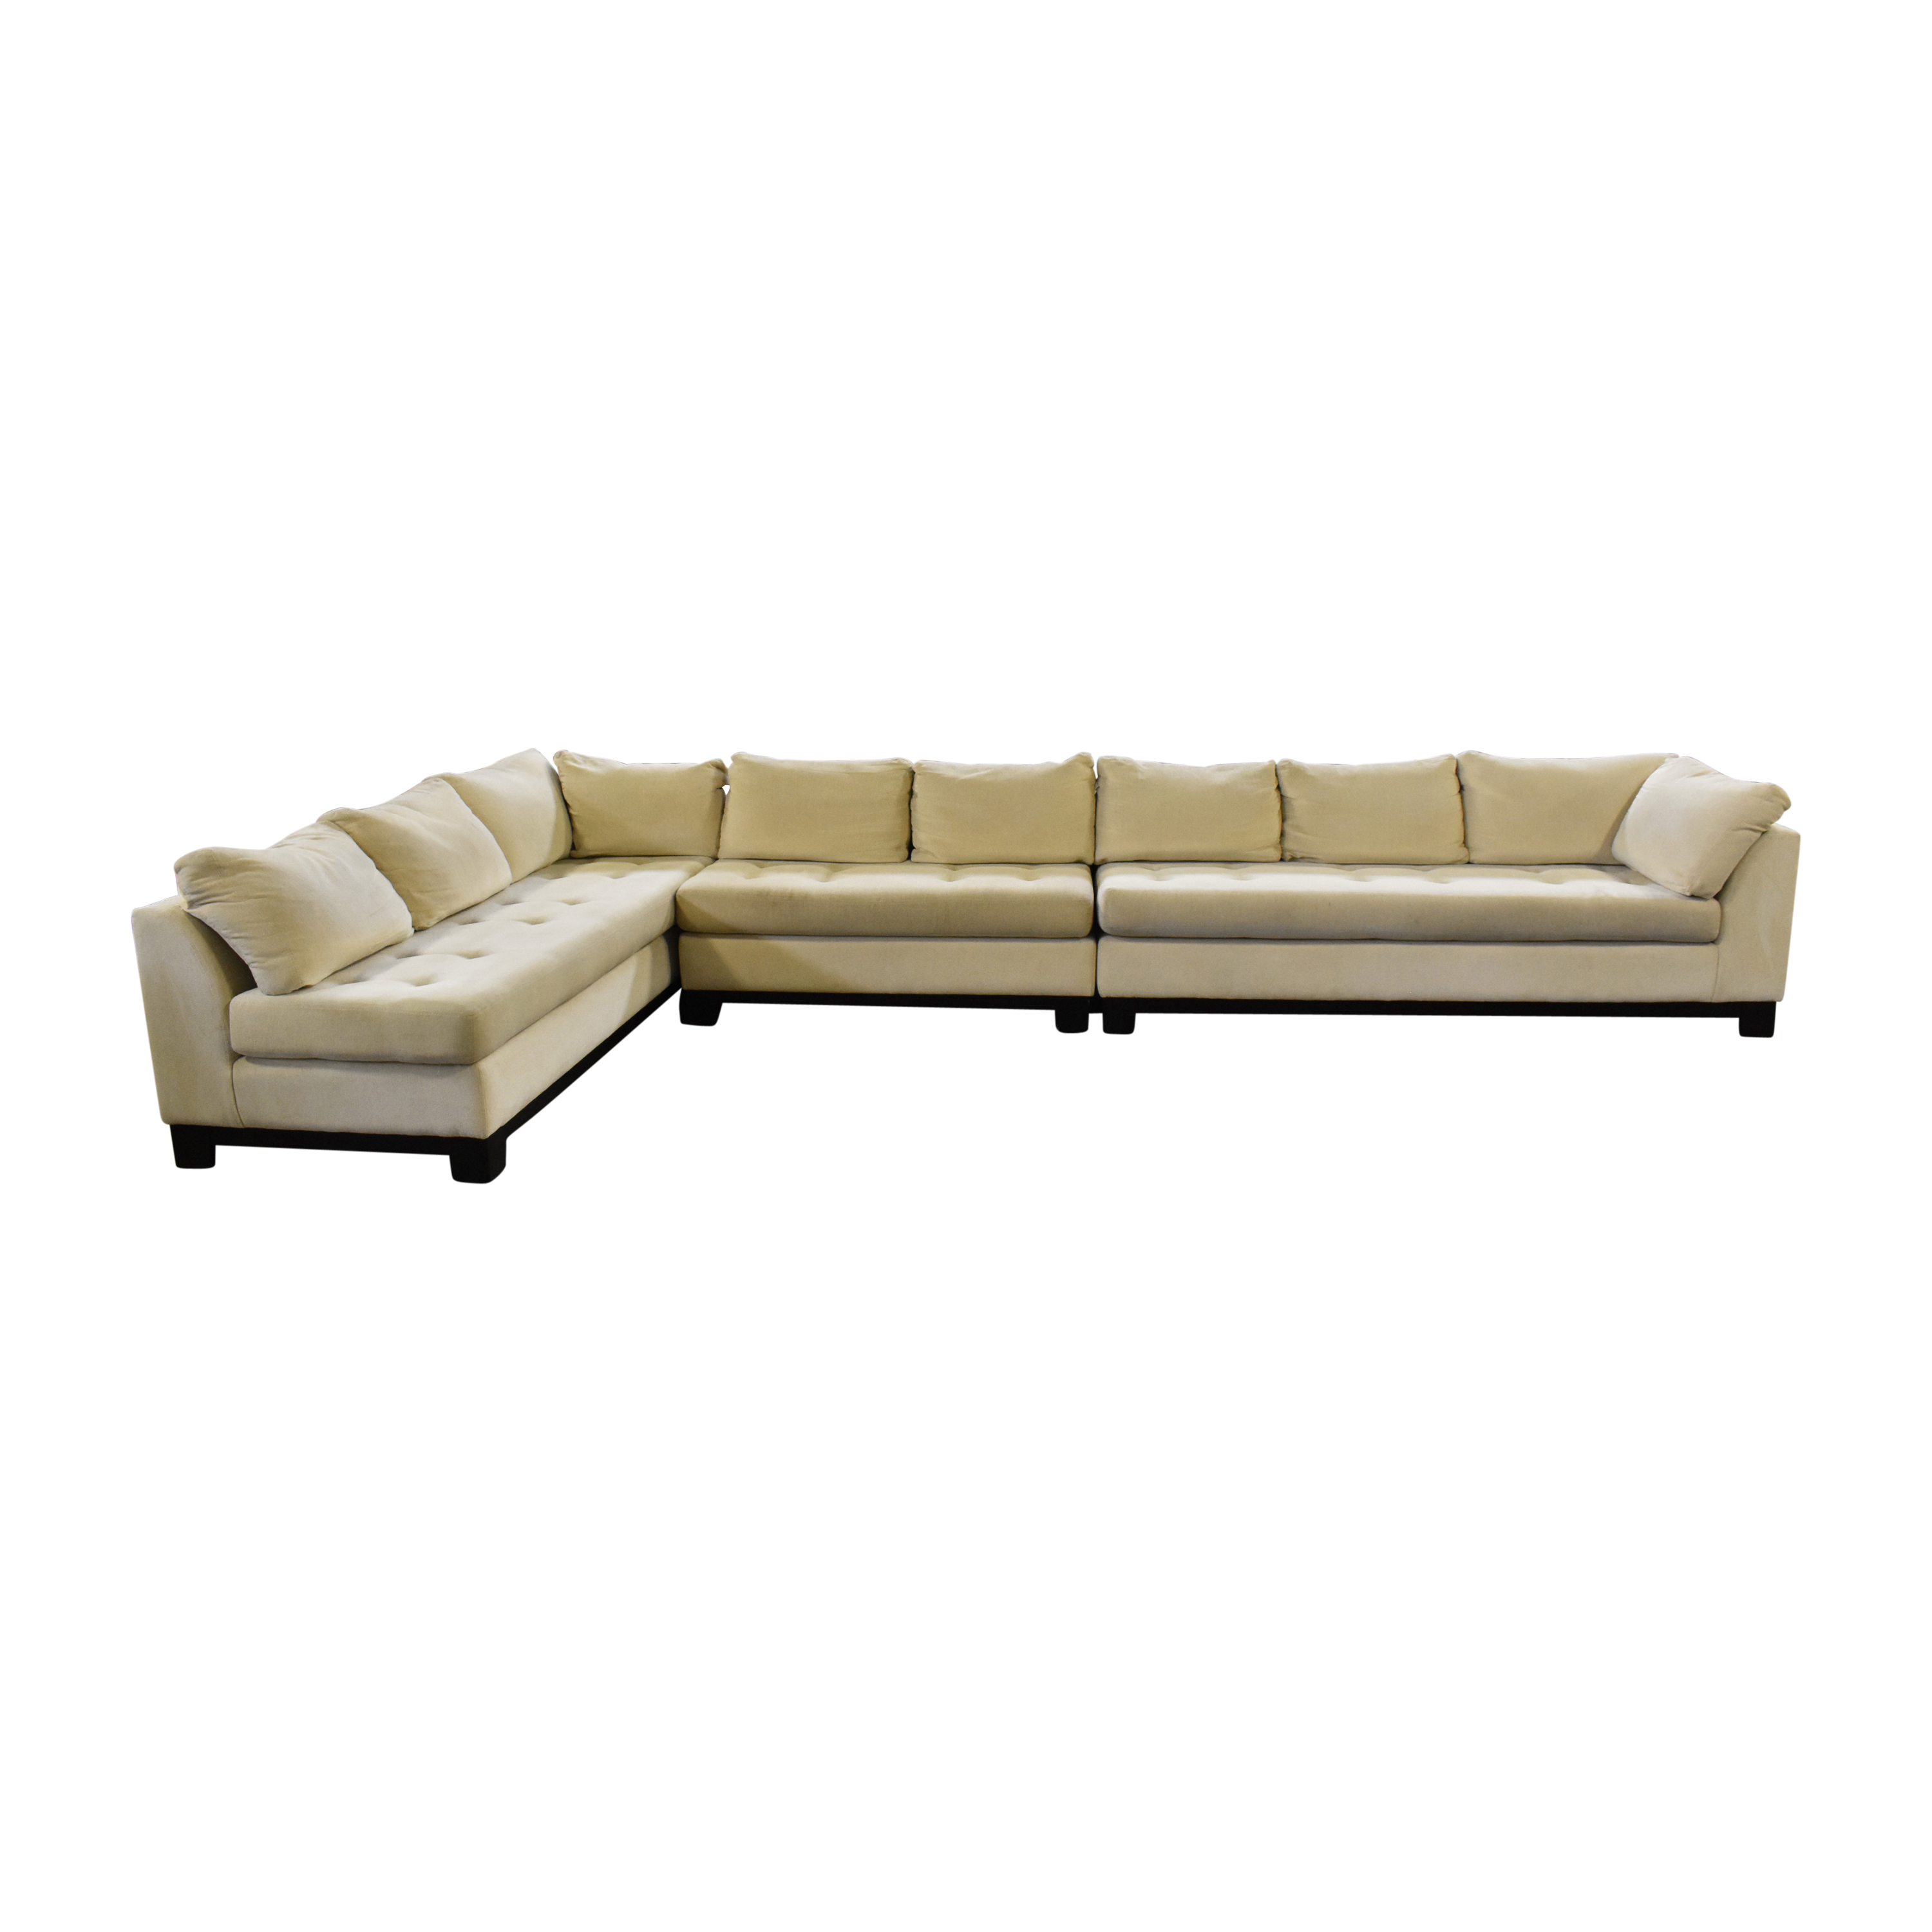 Bloomingdale's Bloomingdale's Artisan Collection Sectional used